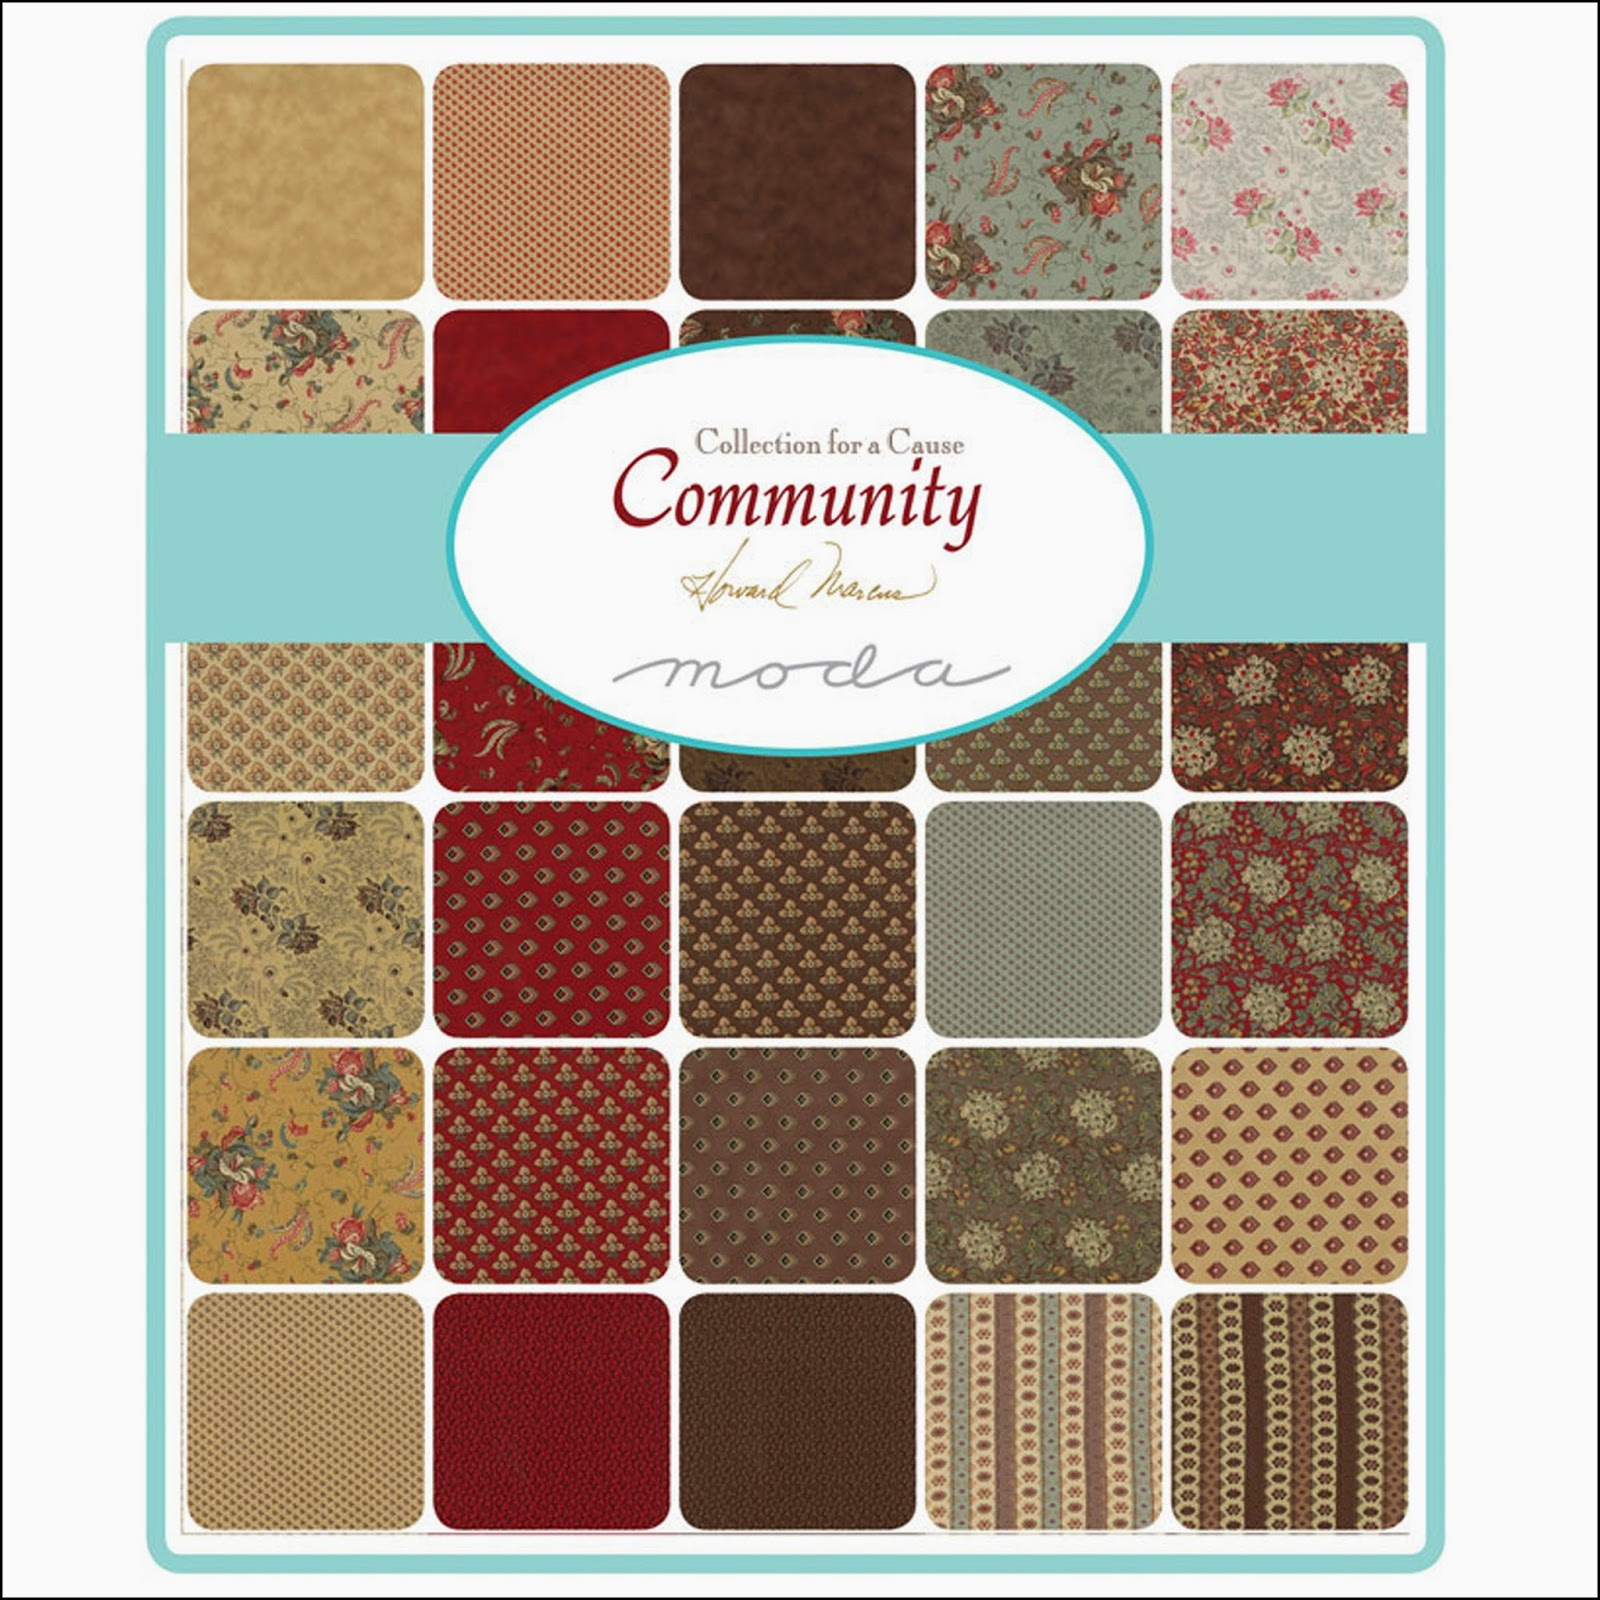 Moda COMMUNITY COLLECTIONS FOR A CAUSE Quilt Fabric by Howard Marcus for Moda Fabrics